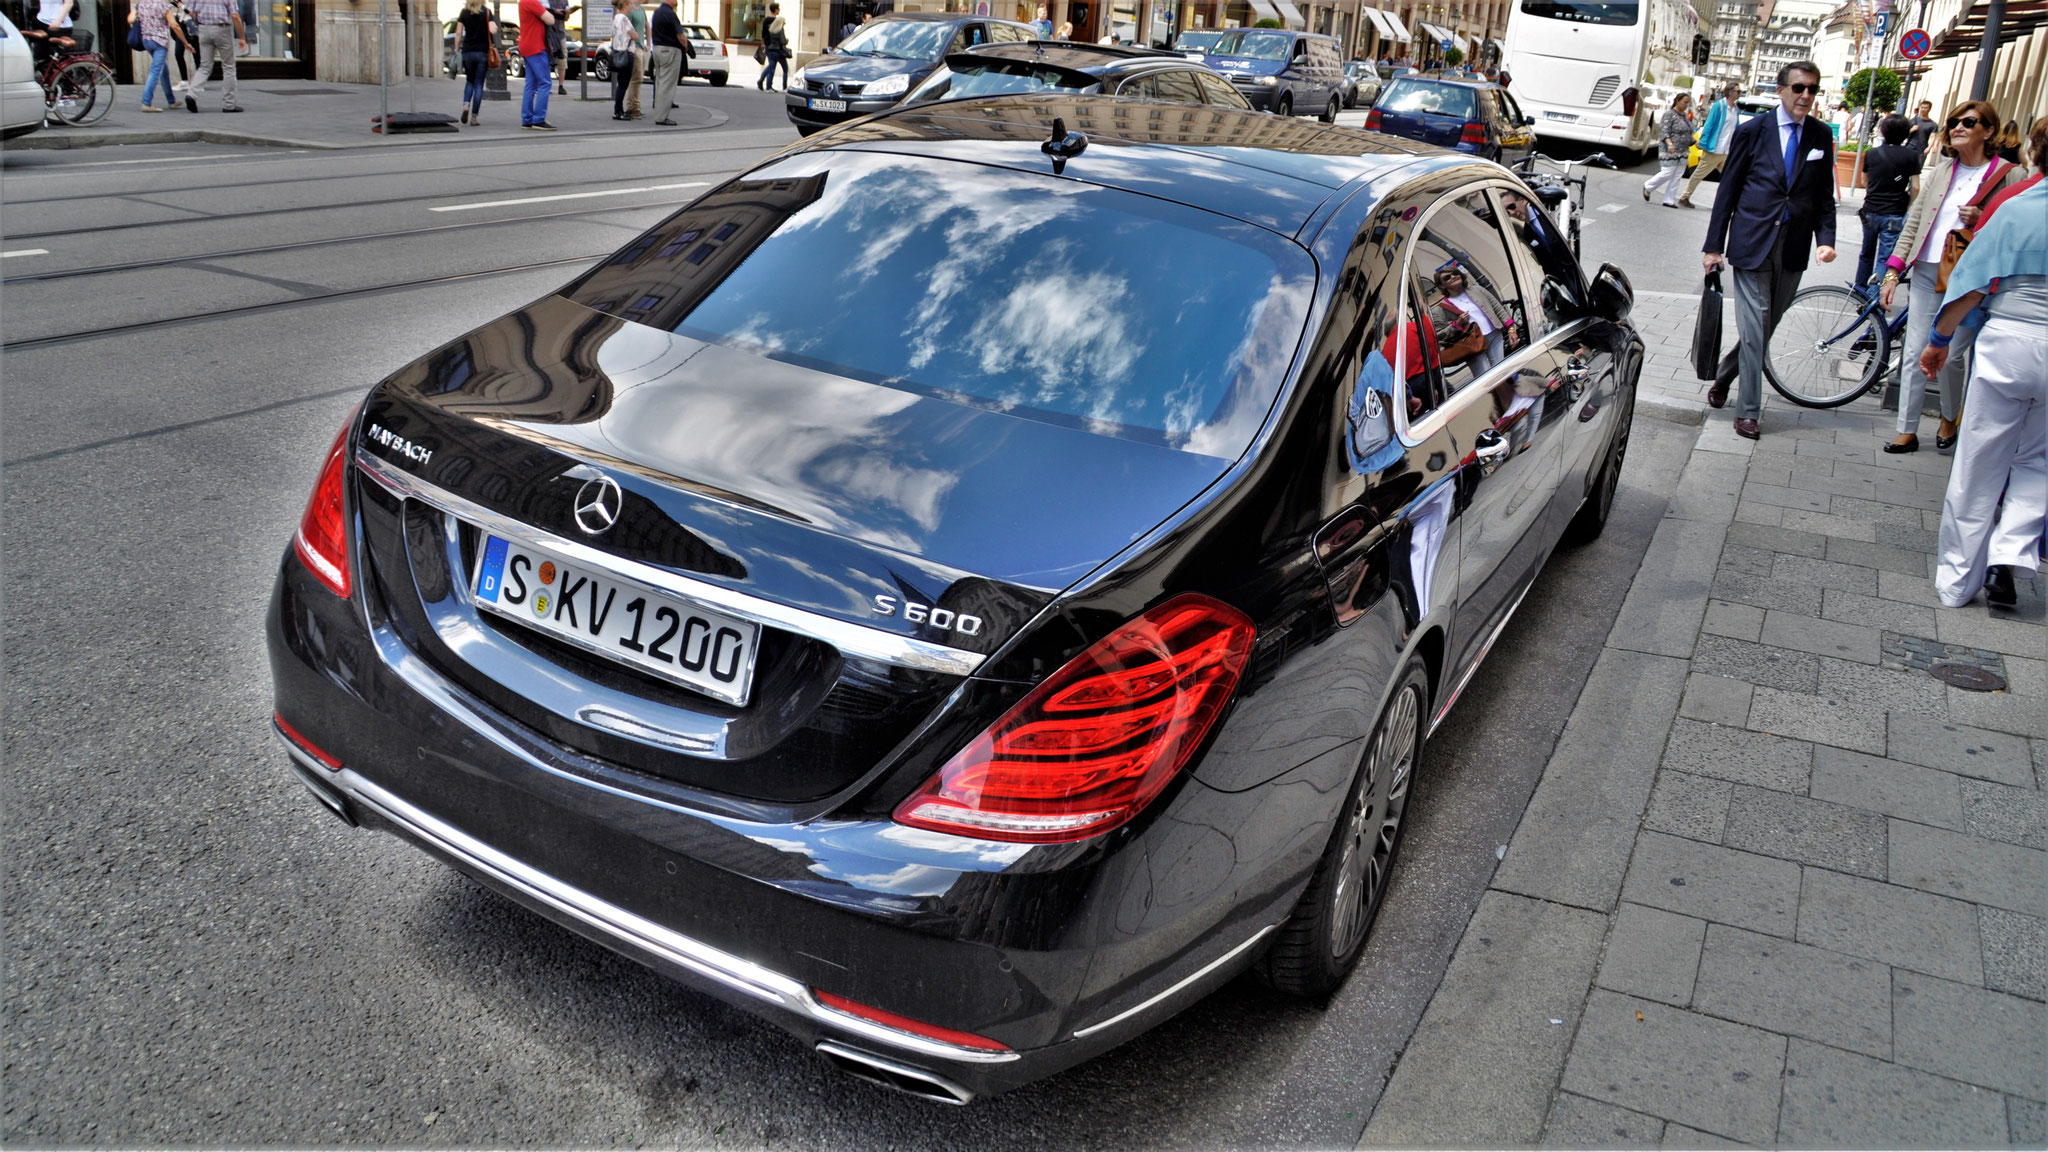 Mercedes Maybach S600 - S-KV-1200